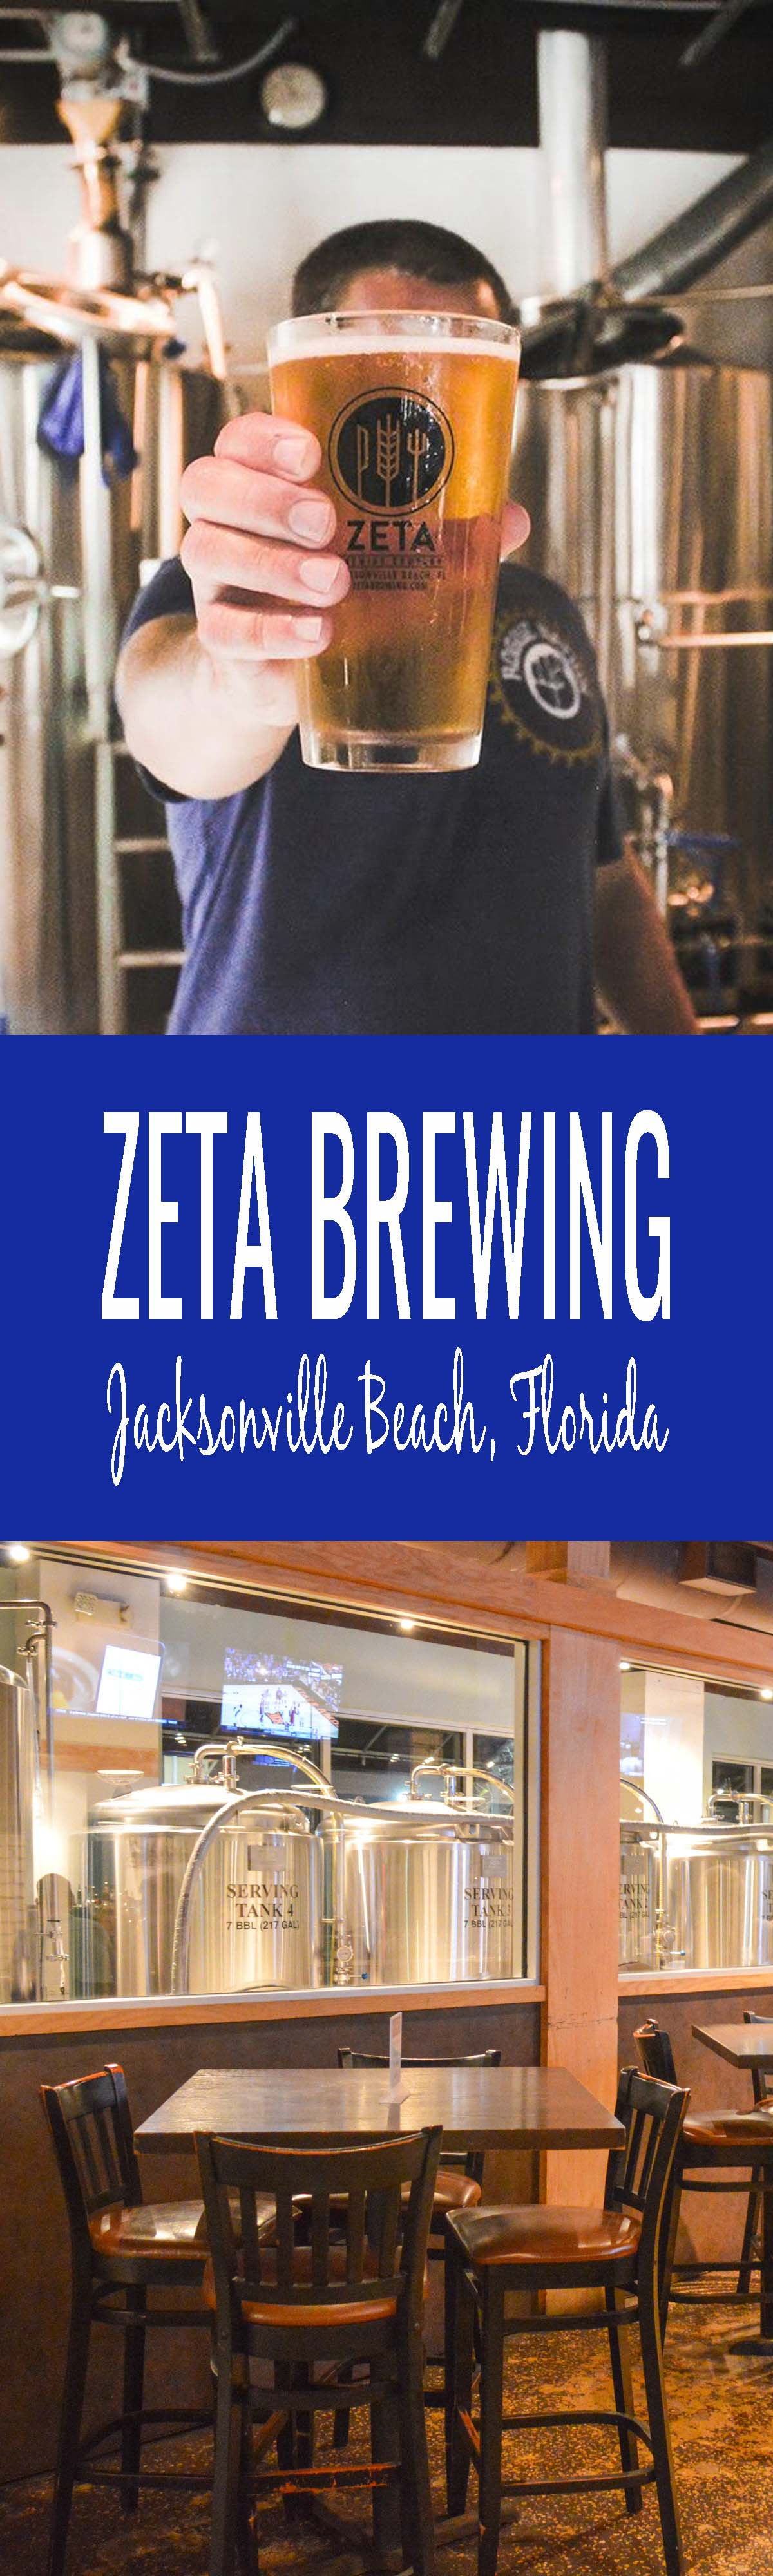 Taproom Talk: Zeta Brewing in Jacksonville Beach, Florida. Explore Jacksonville, Florida's food and craft beer travel scene through the eyes of Zeta Brewing Head Brewer, Chris Prevatt. Jacksonville is one tasty (and sudsy) beach town!